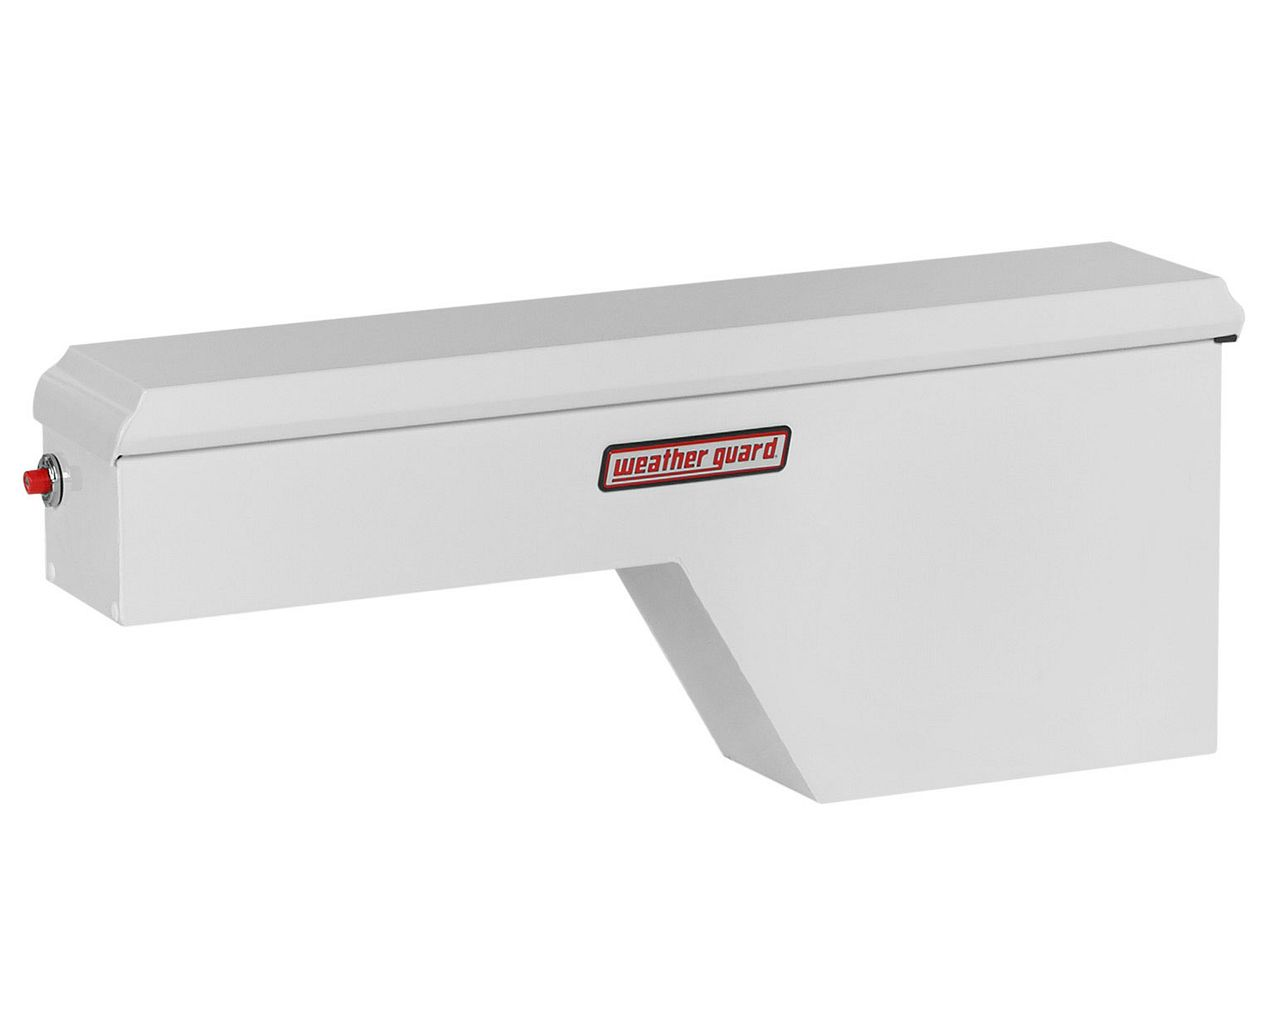 Weather Guard 160-3-01 Pork Chop Box, Steel, Driver Side